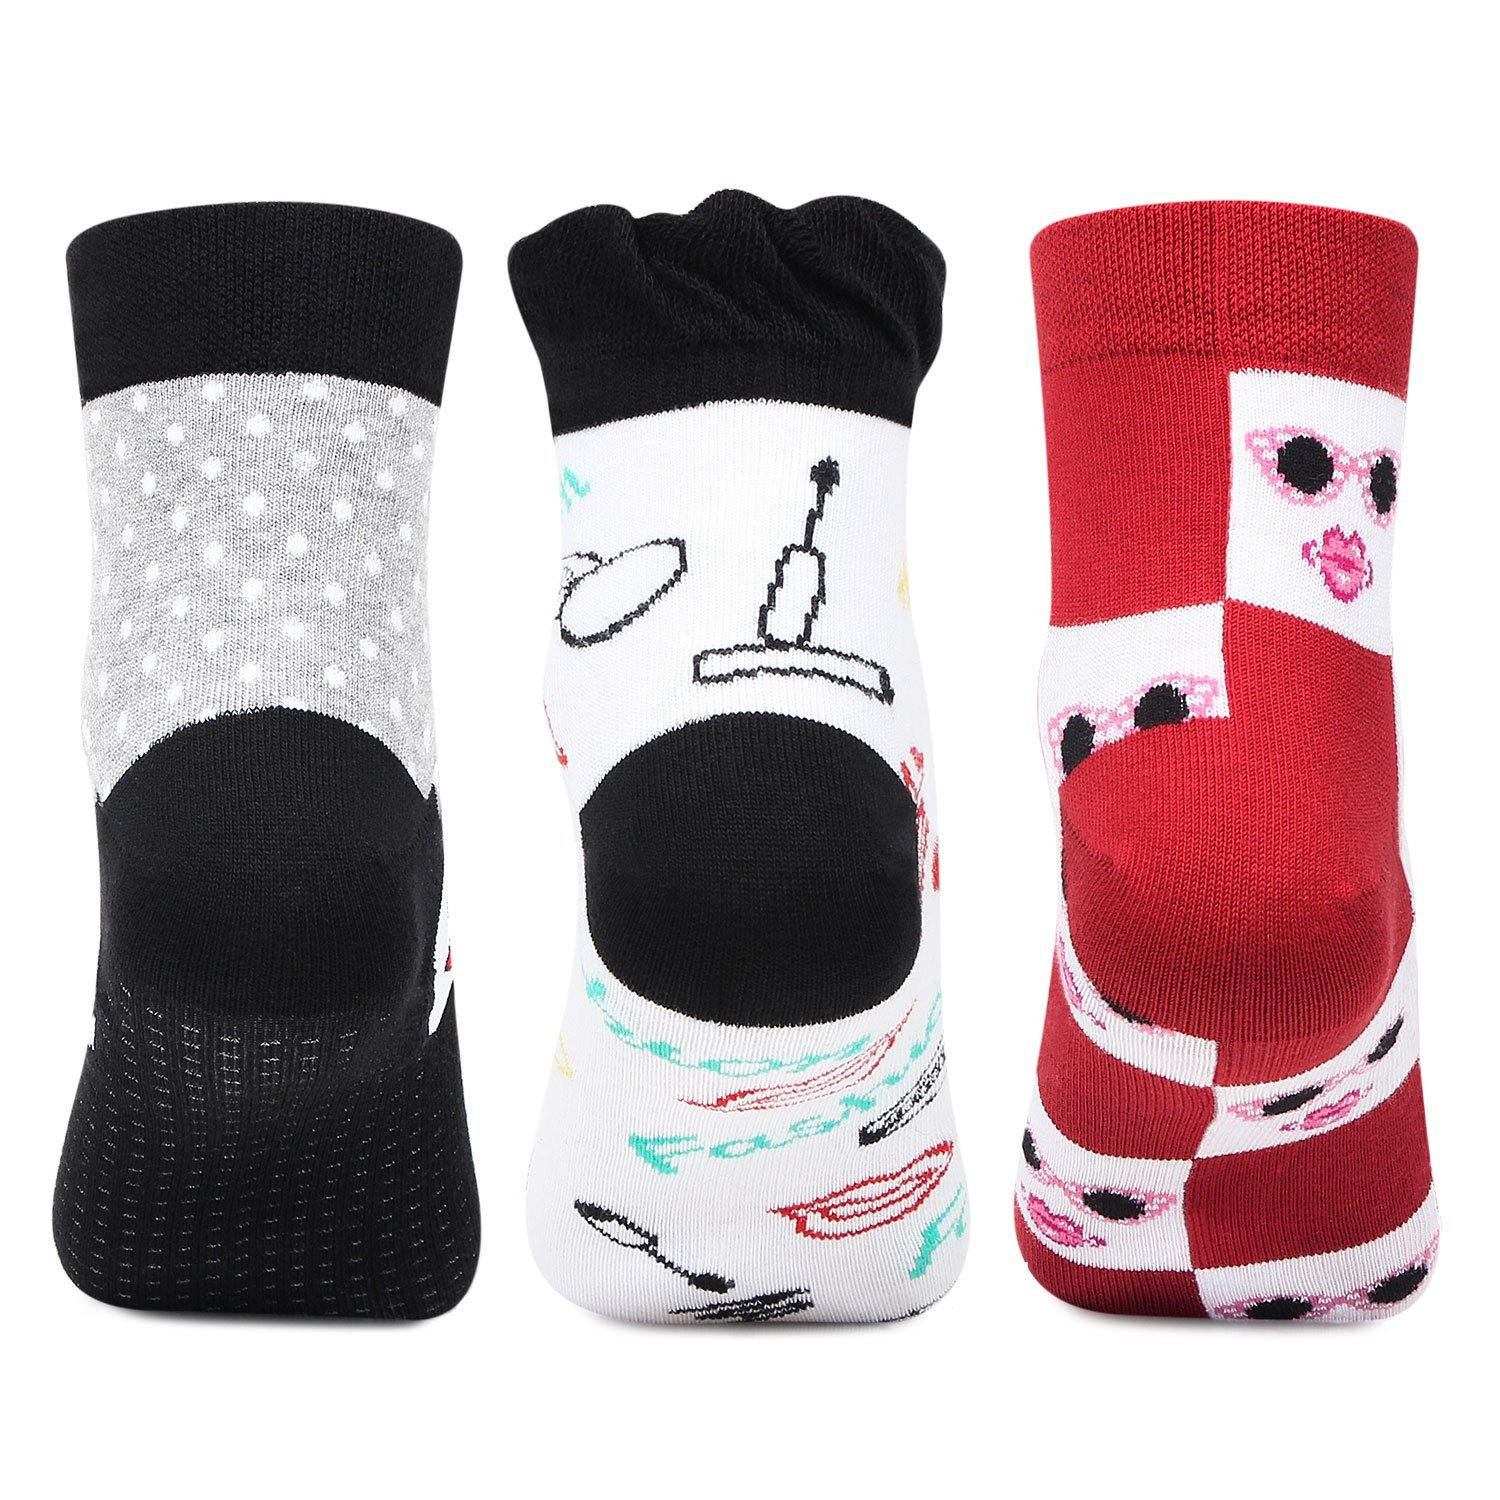 Fashionable Ankle Length Multi color Socks  For Women